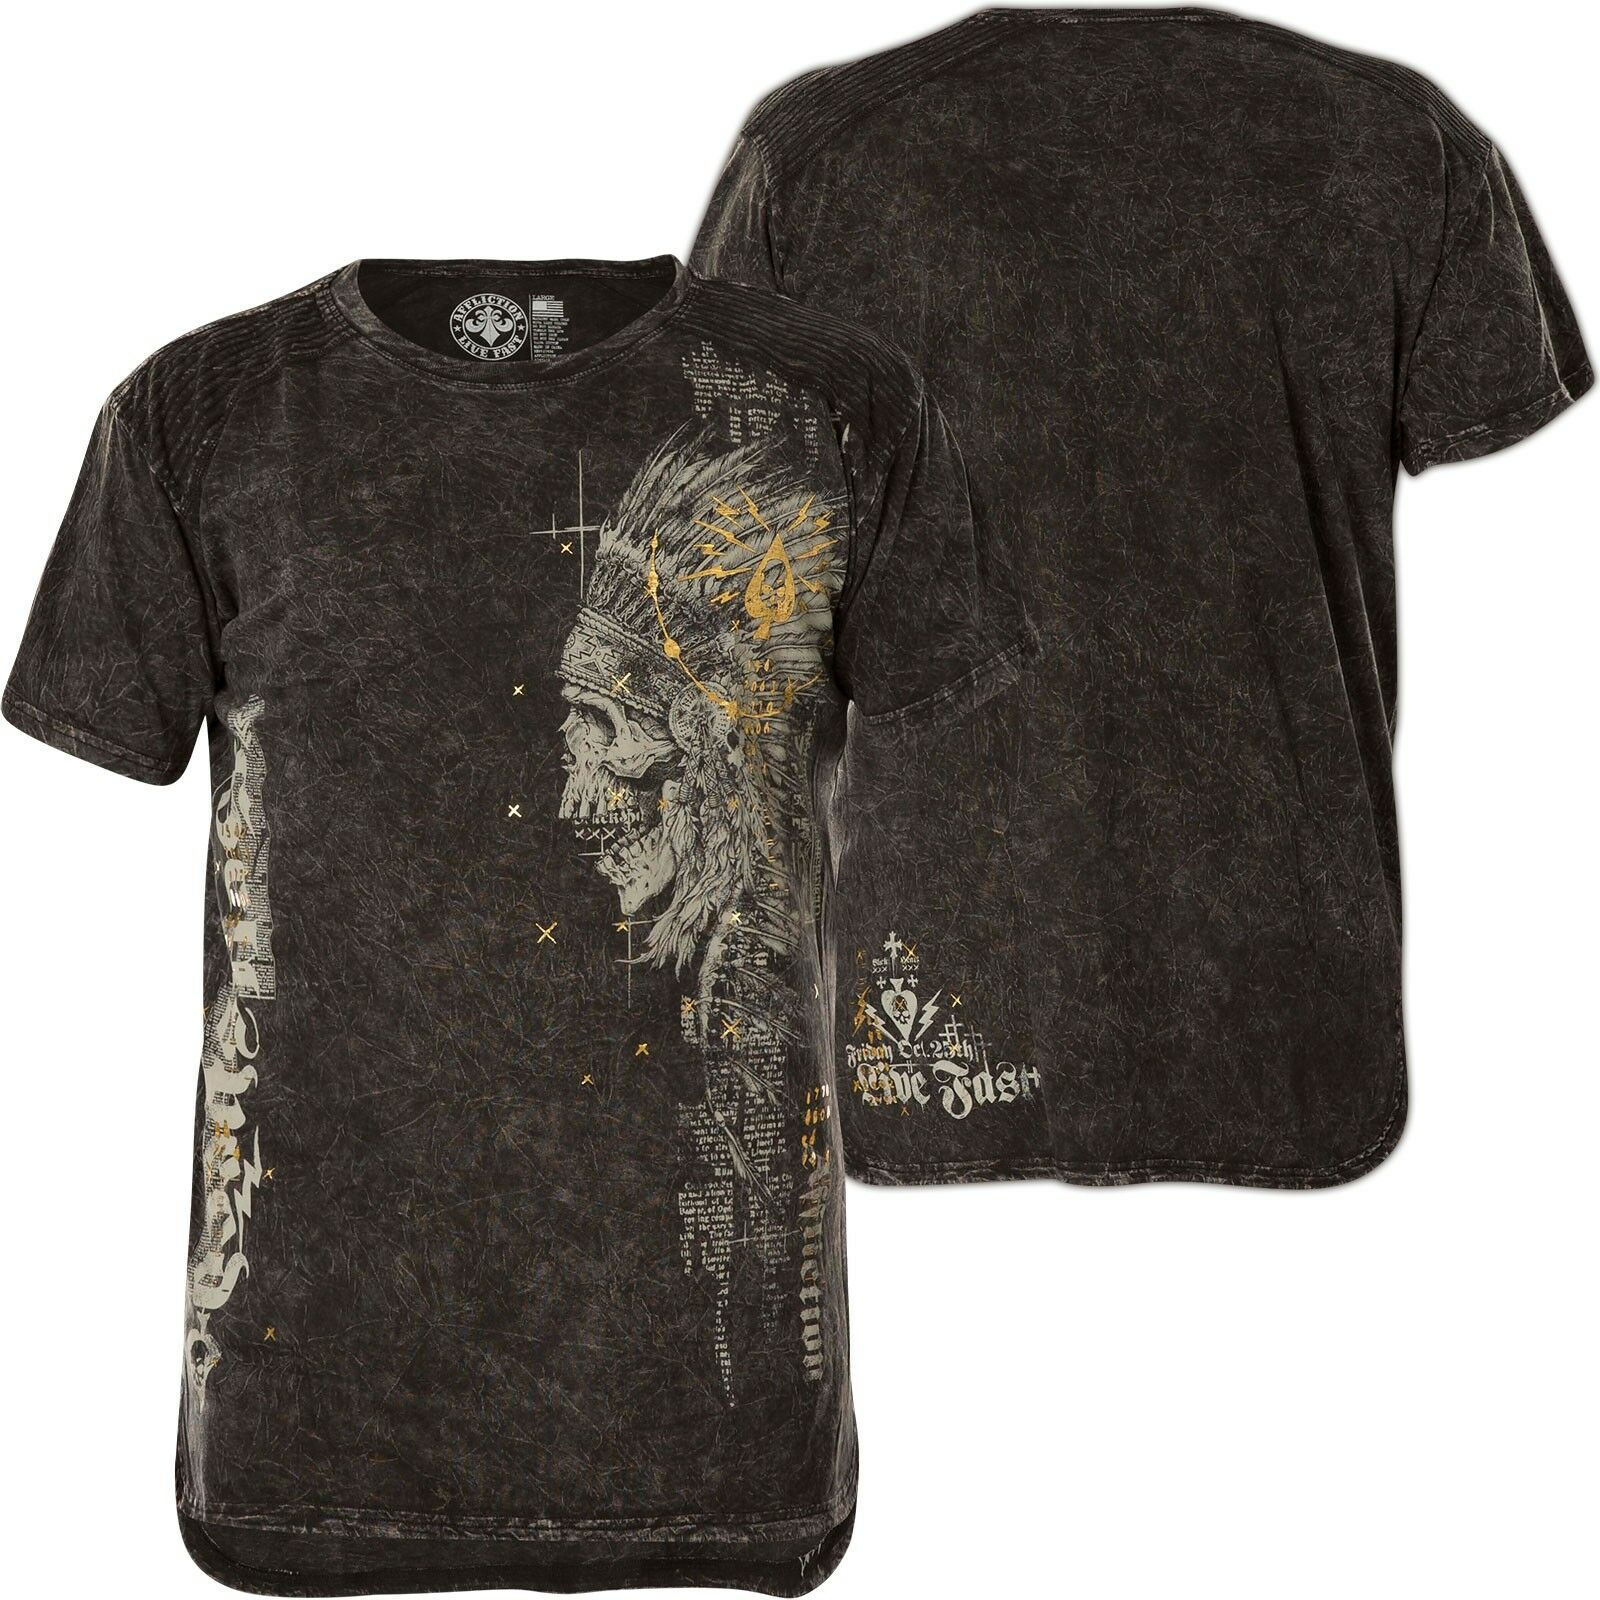 Affliction T-shirt hellspeed TRIBE NERO T-shirts